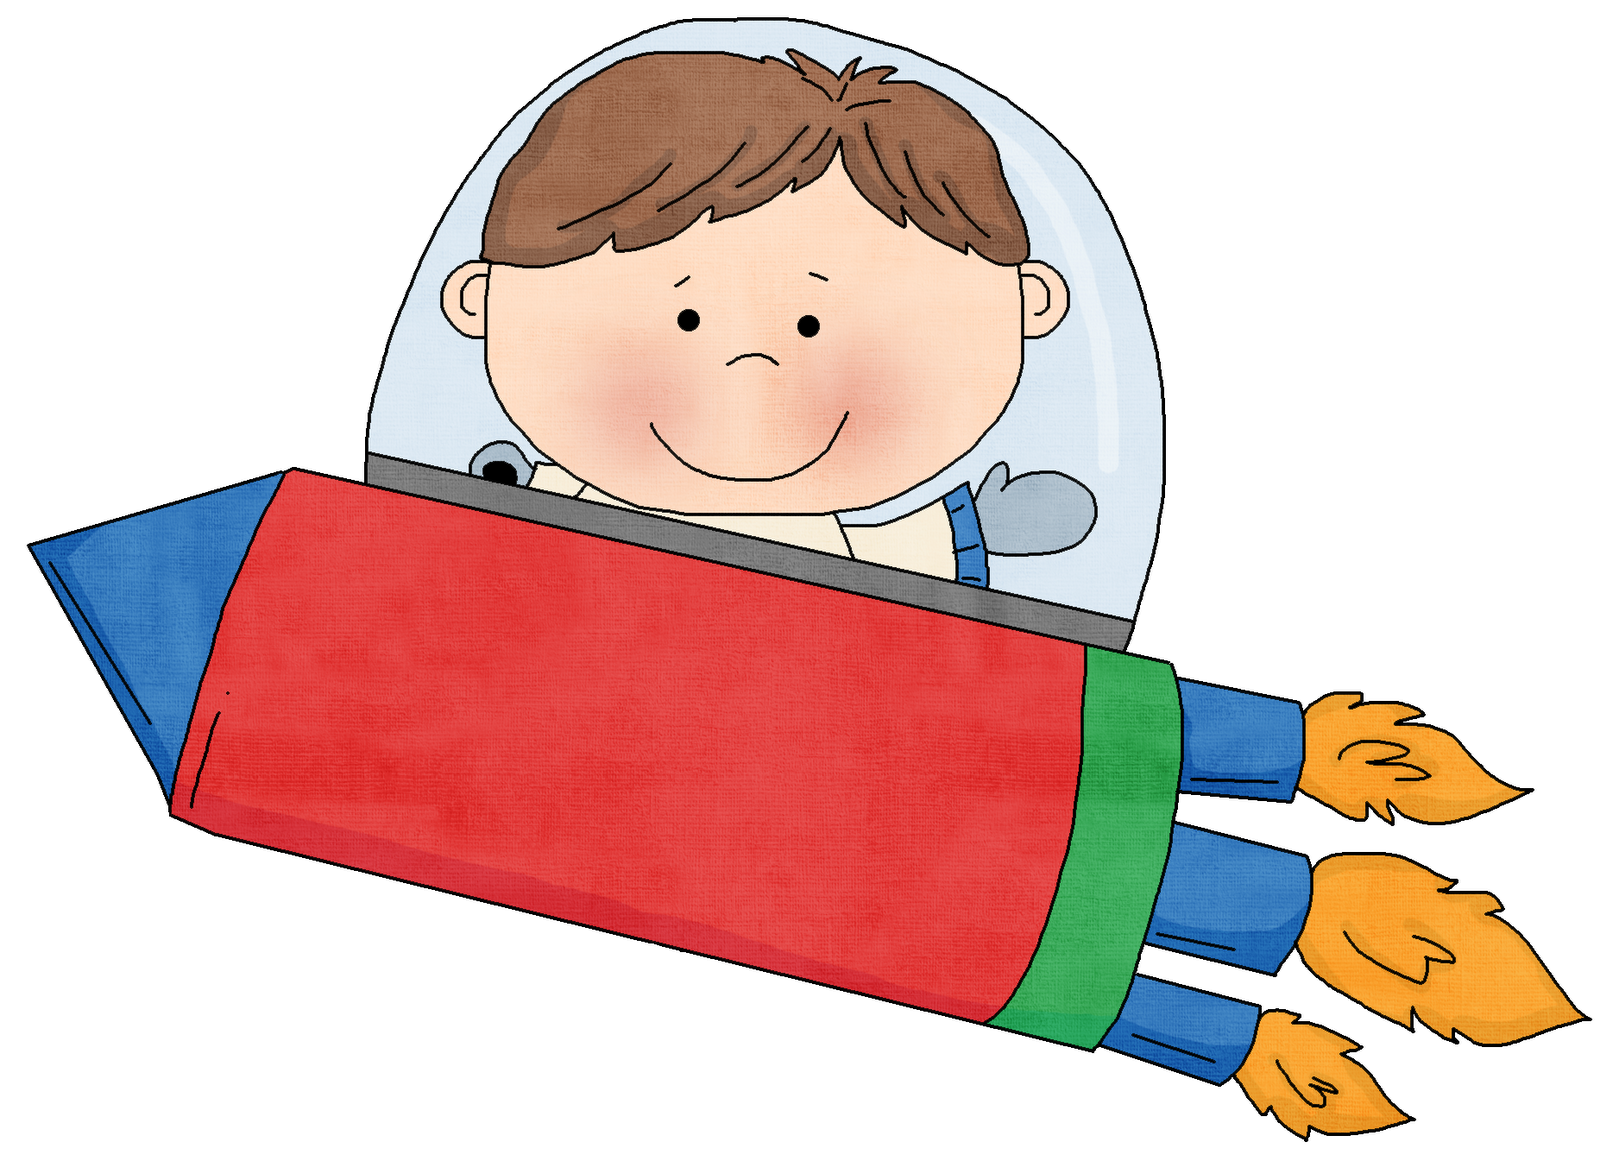 Kicked out of school clipart royalty free stock Learning and Teaching With Preschoolers: Adventure in Space ... royalty free stock